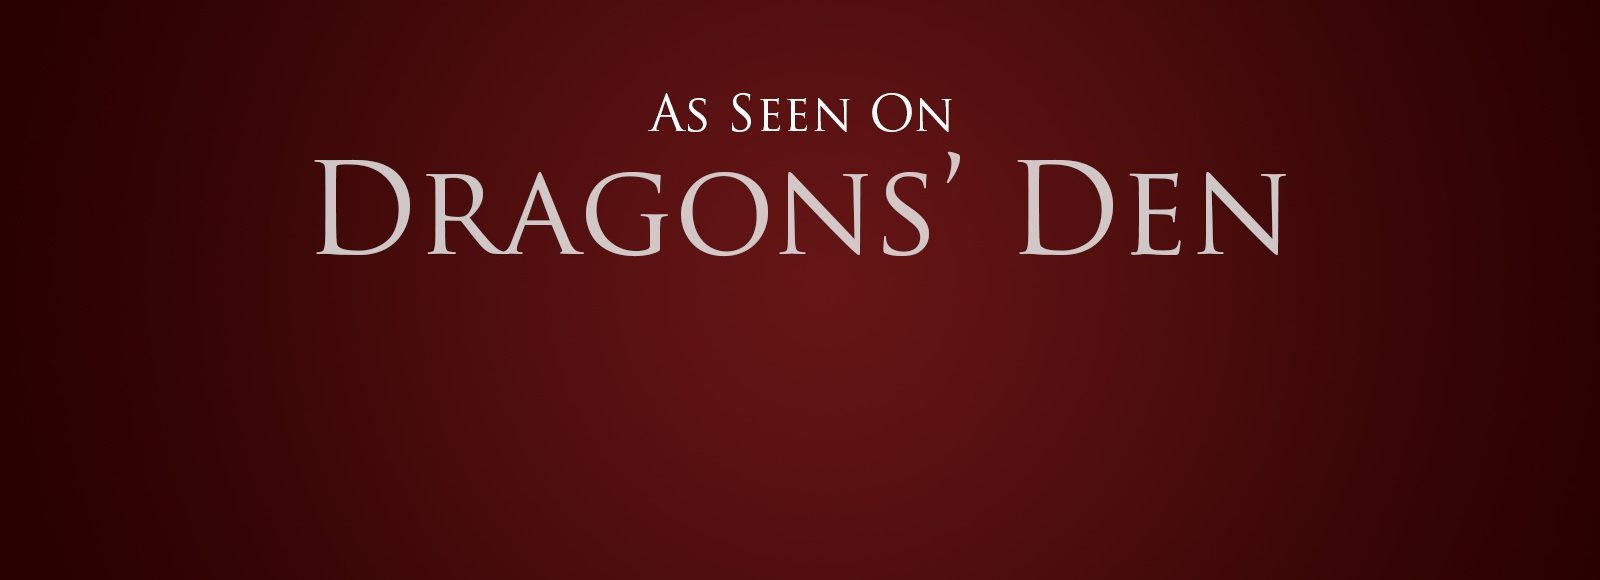 Donegal Pens Dragons' Den